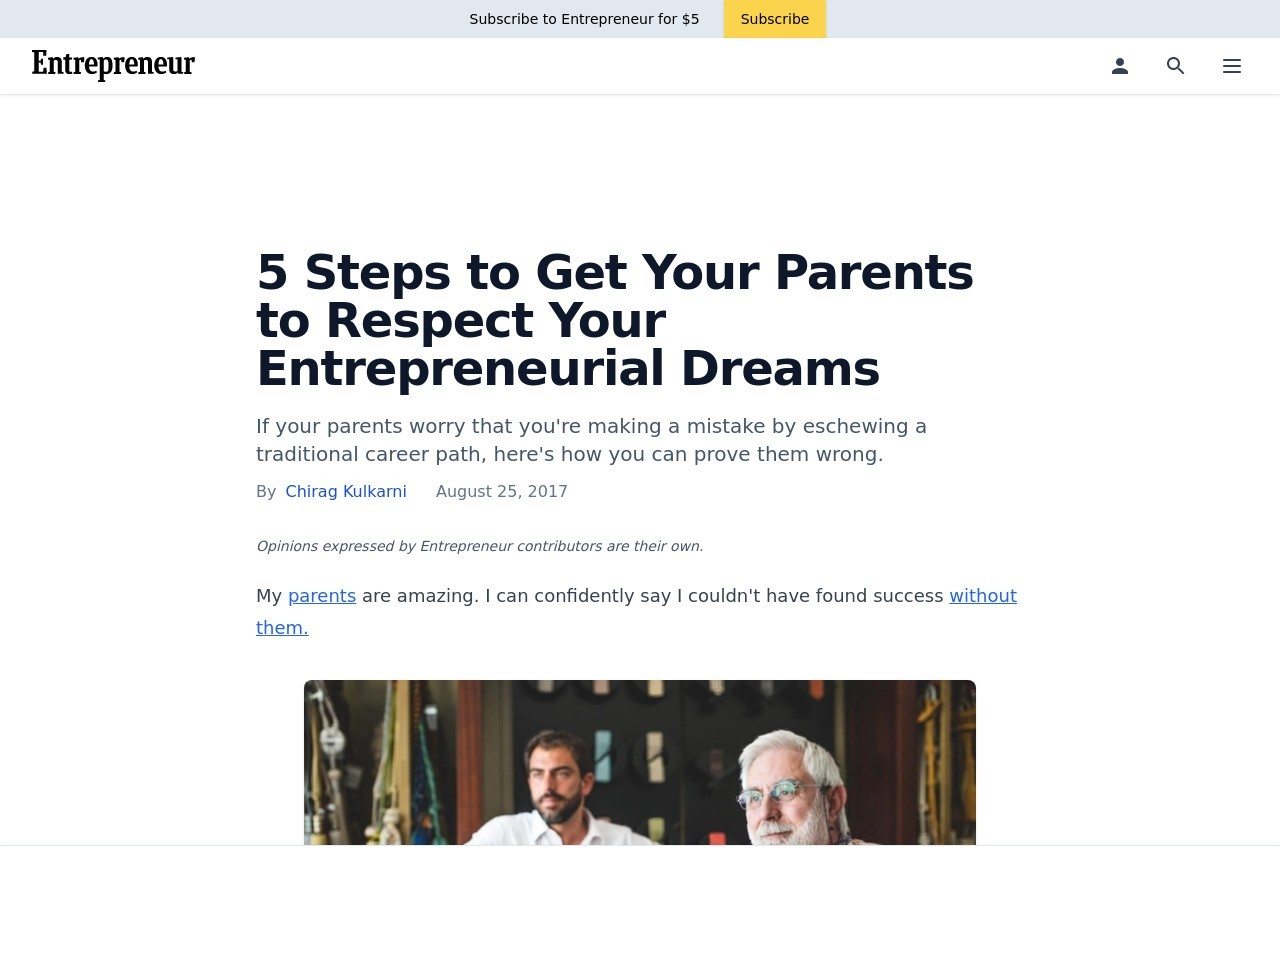 5 Steps to Get Your Parents to Respect Your Entrepreneurial Dreams